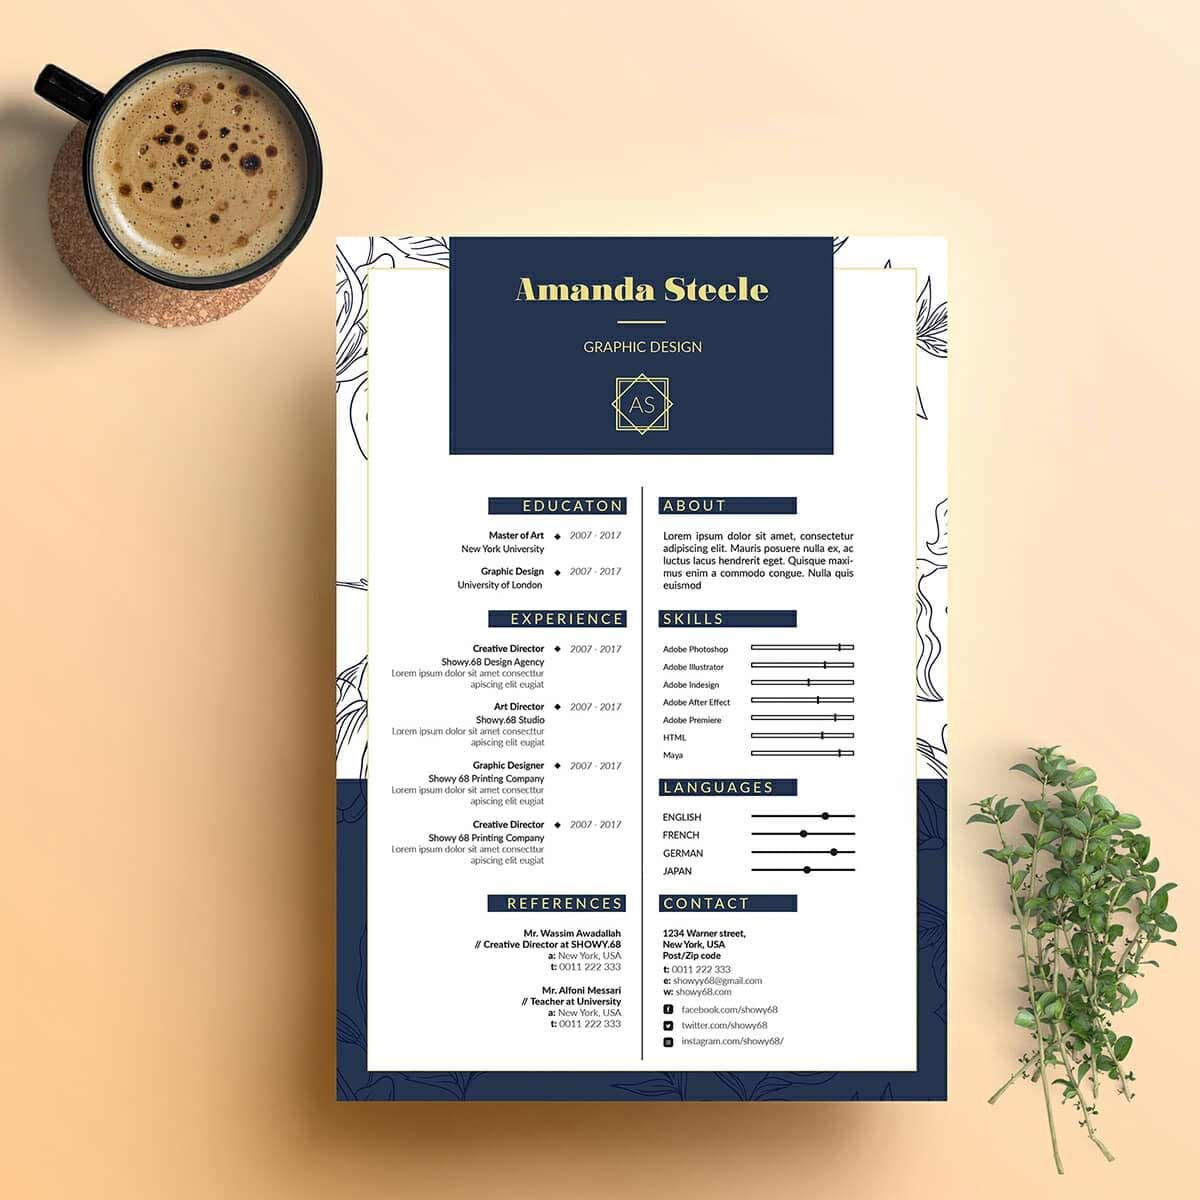 15 Resume Design Ideas Inspirations & Templates【How To